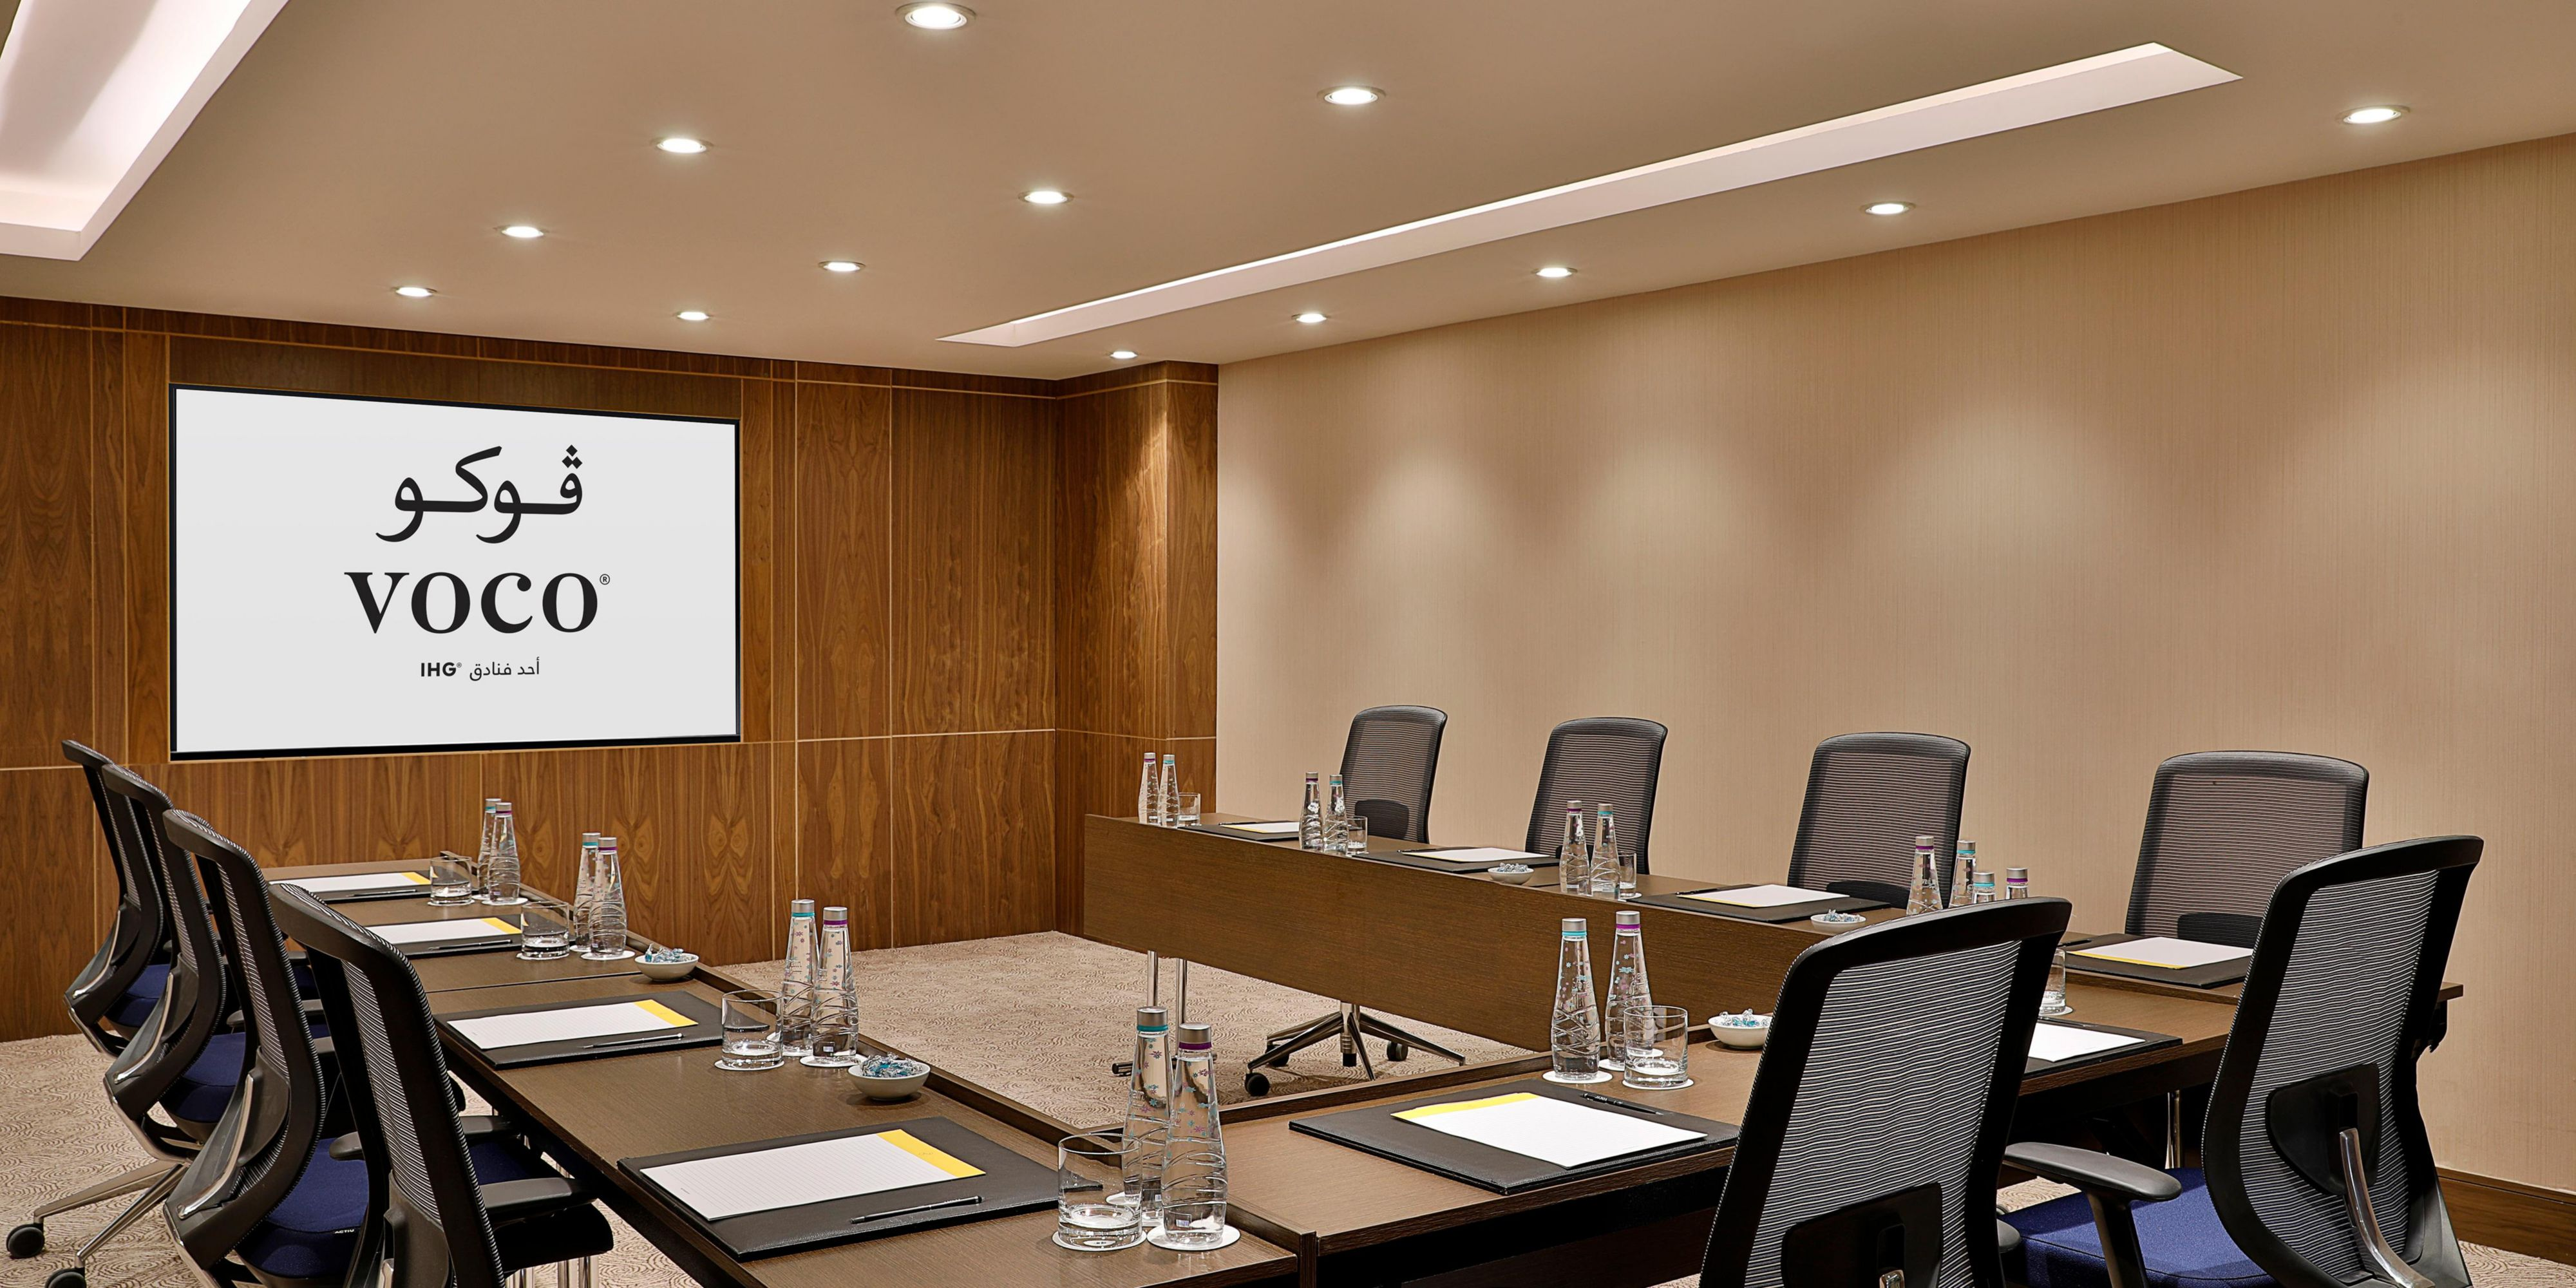 Perfect for Smart meetings. Take full control of this meeting room